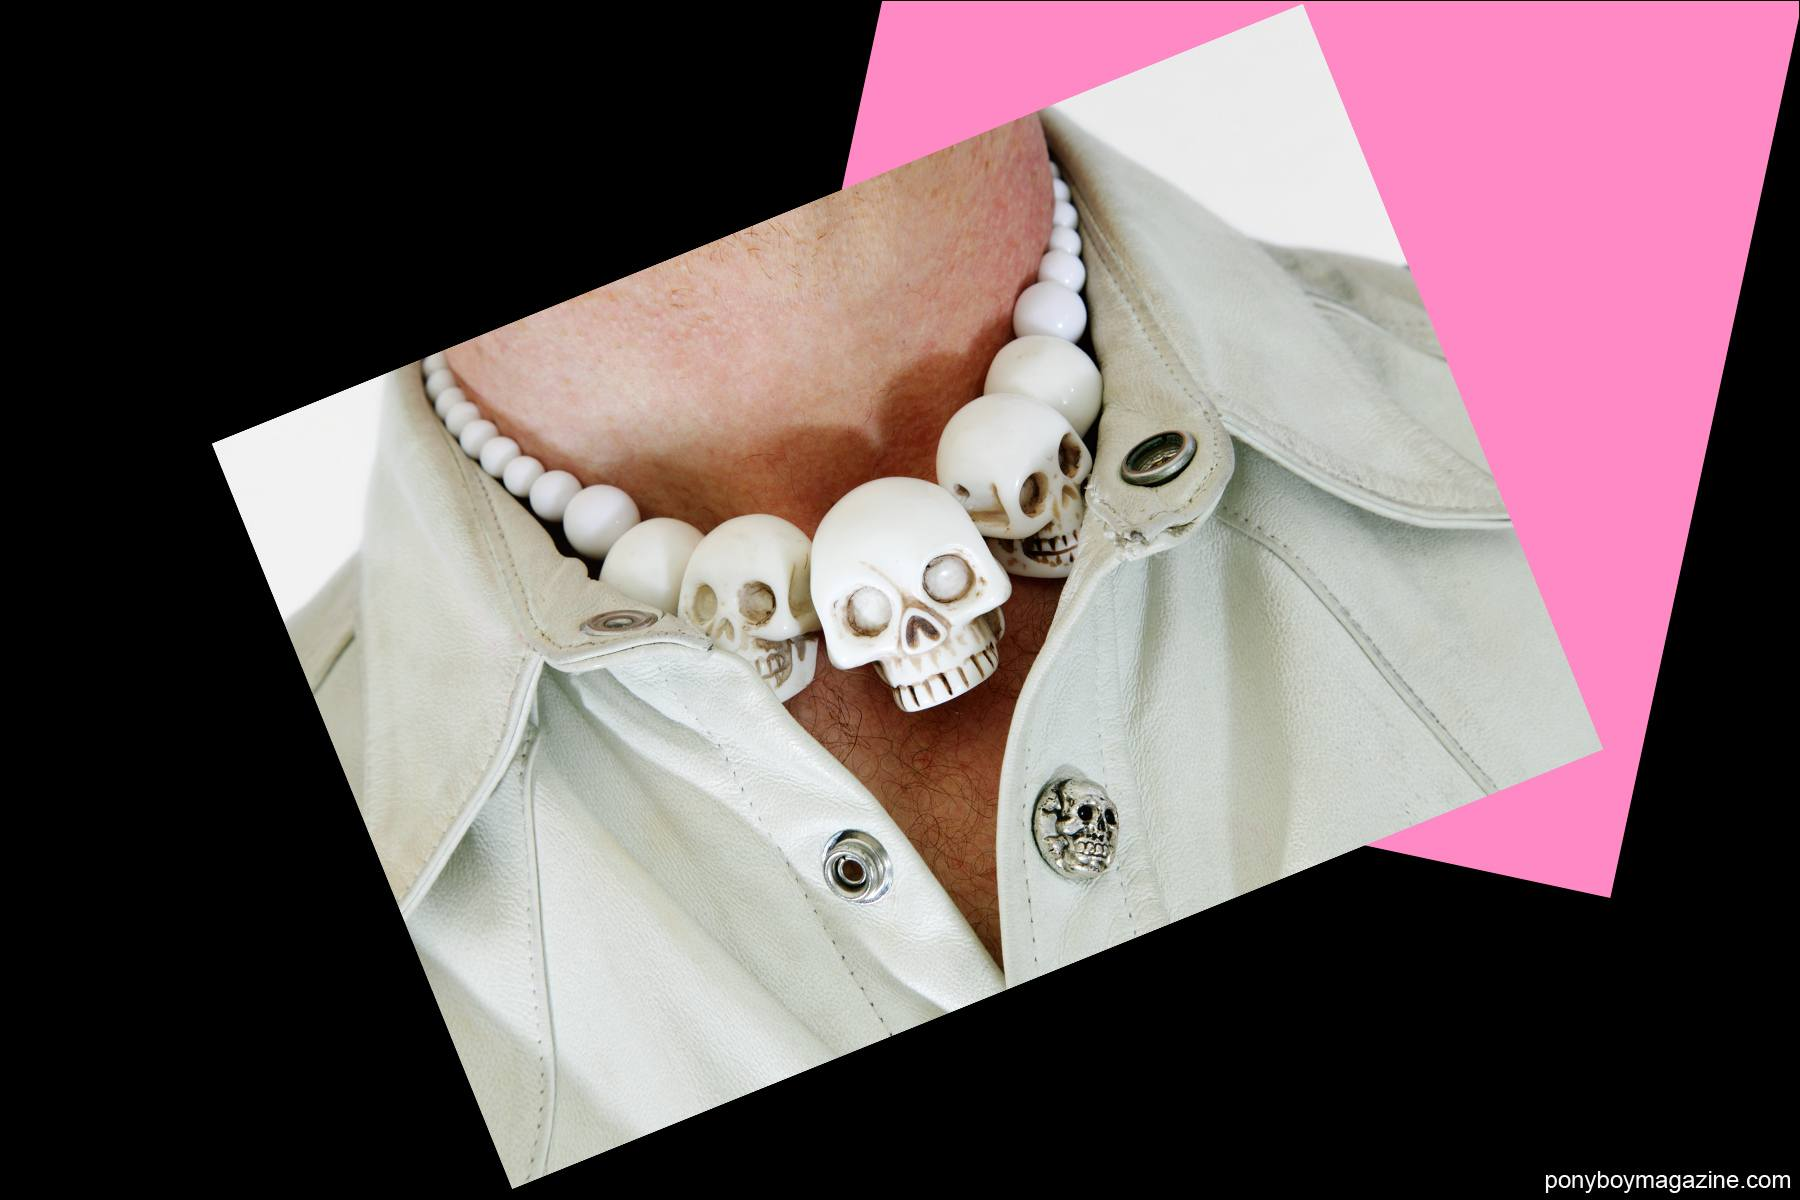 A photo of Tim Polecat's skull necklace. Photographed for Ponyboy Magazine by Alexander Thompson.